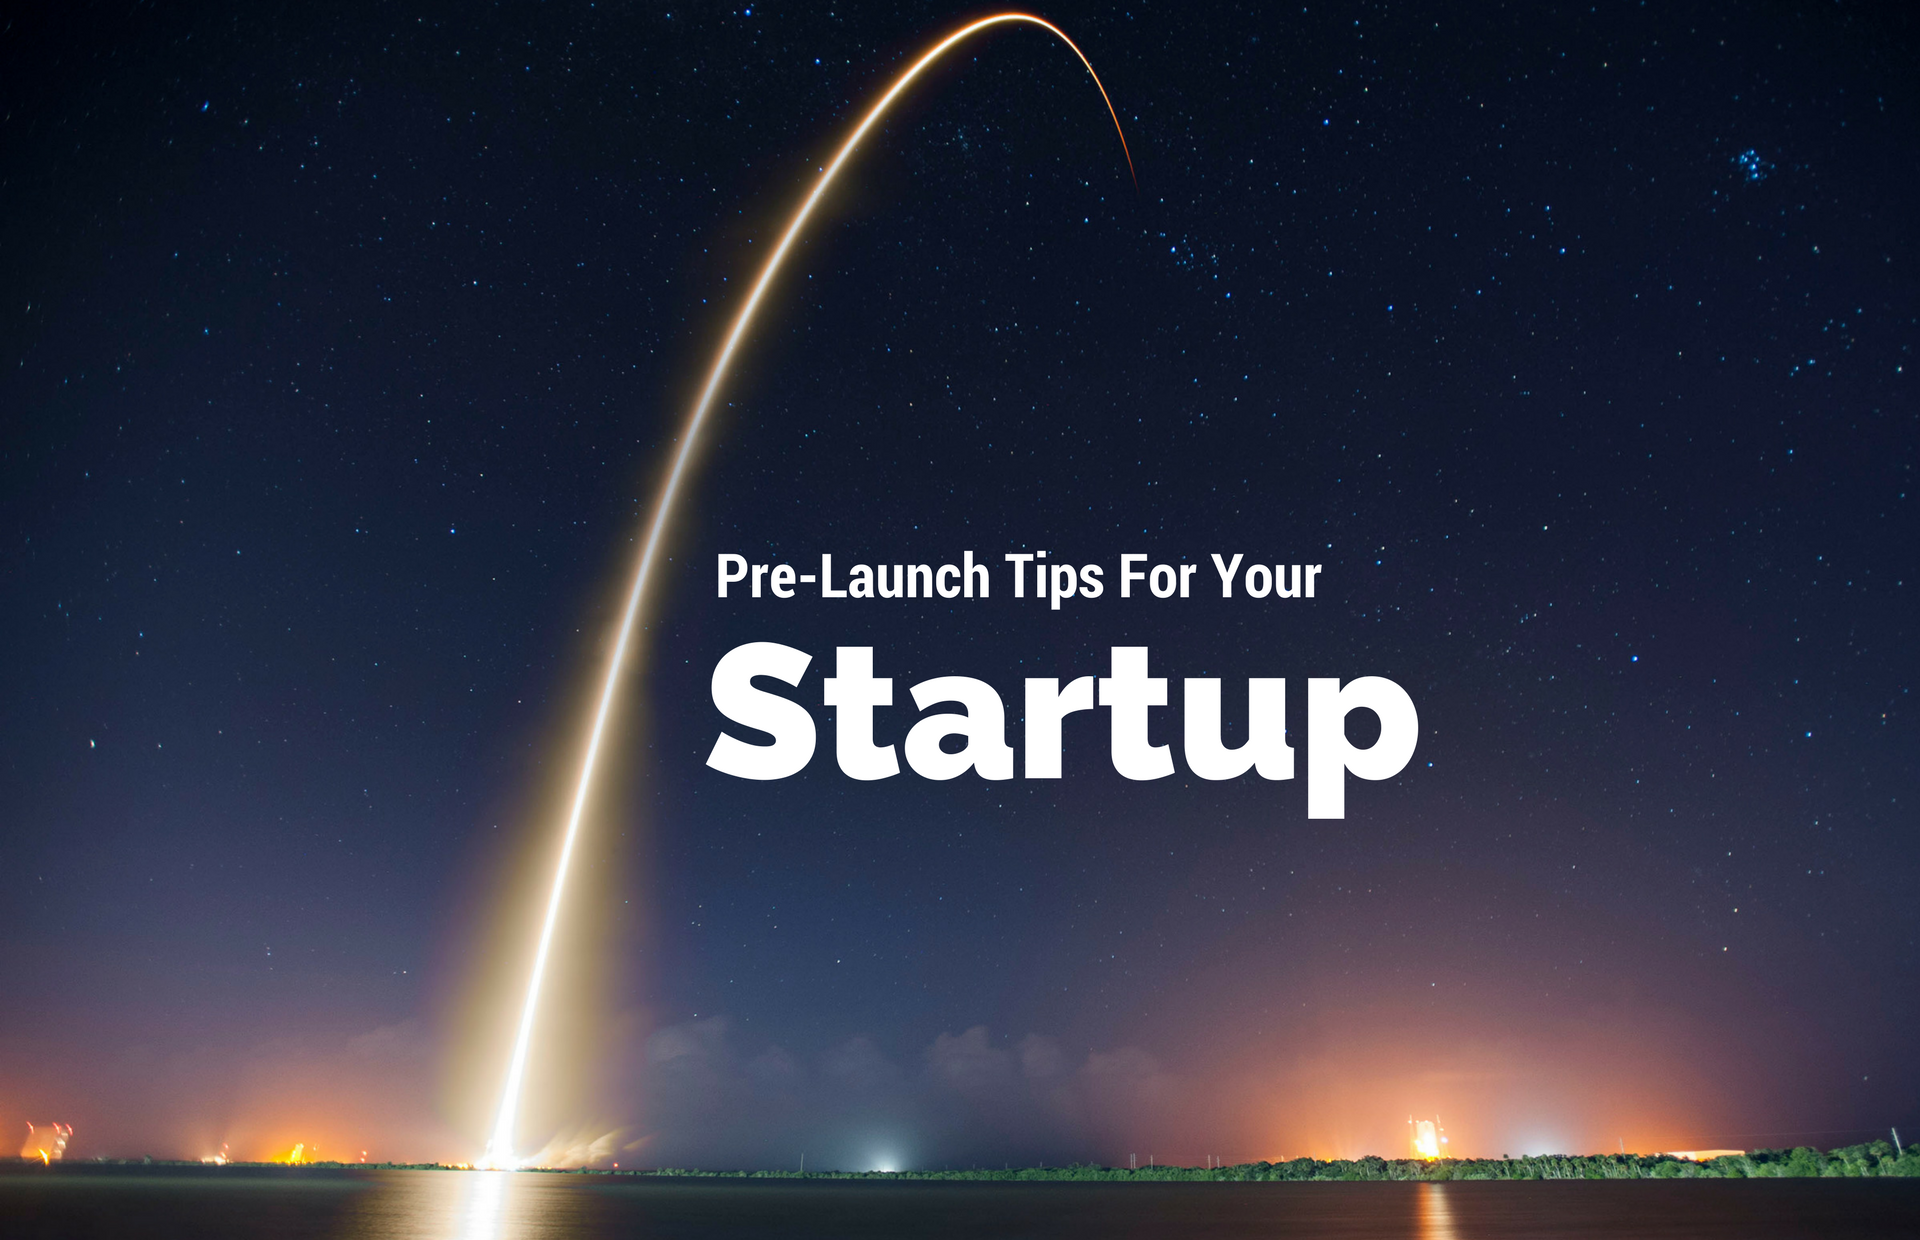 /pre-launch-tips-for-your-startup-aedf4bd4393c feature image